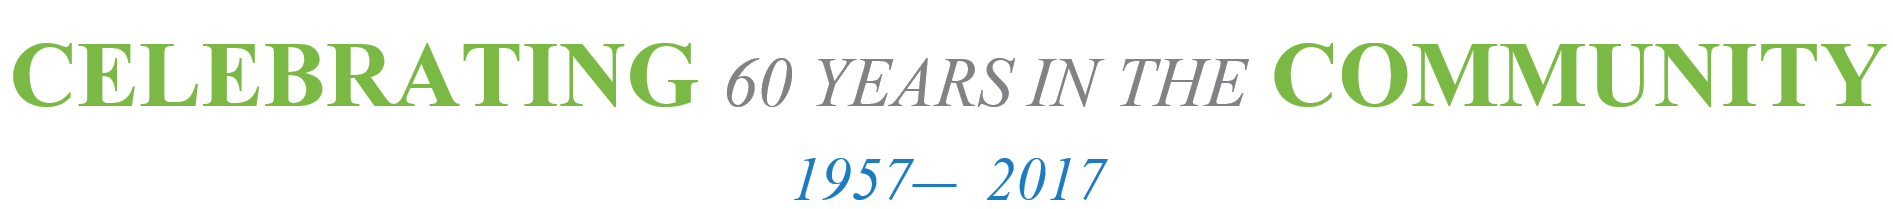 Celebrating 60 Years in the Community, 1957-2017